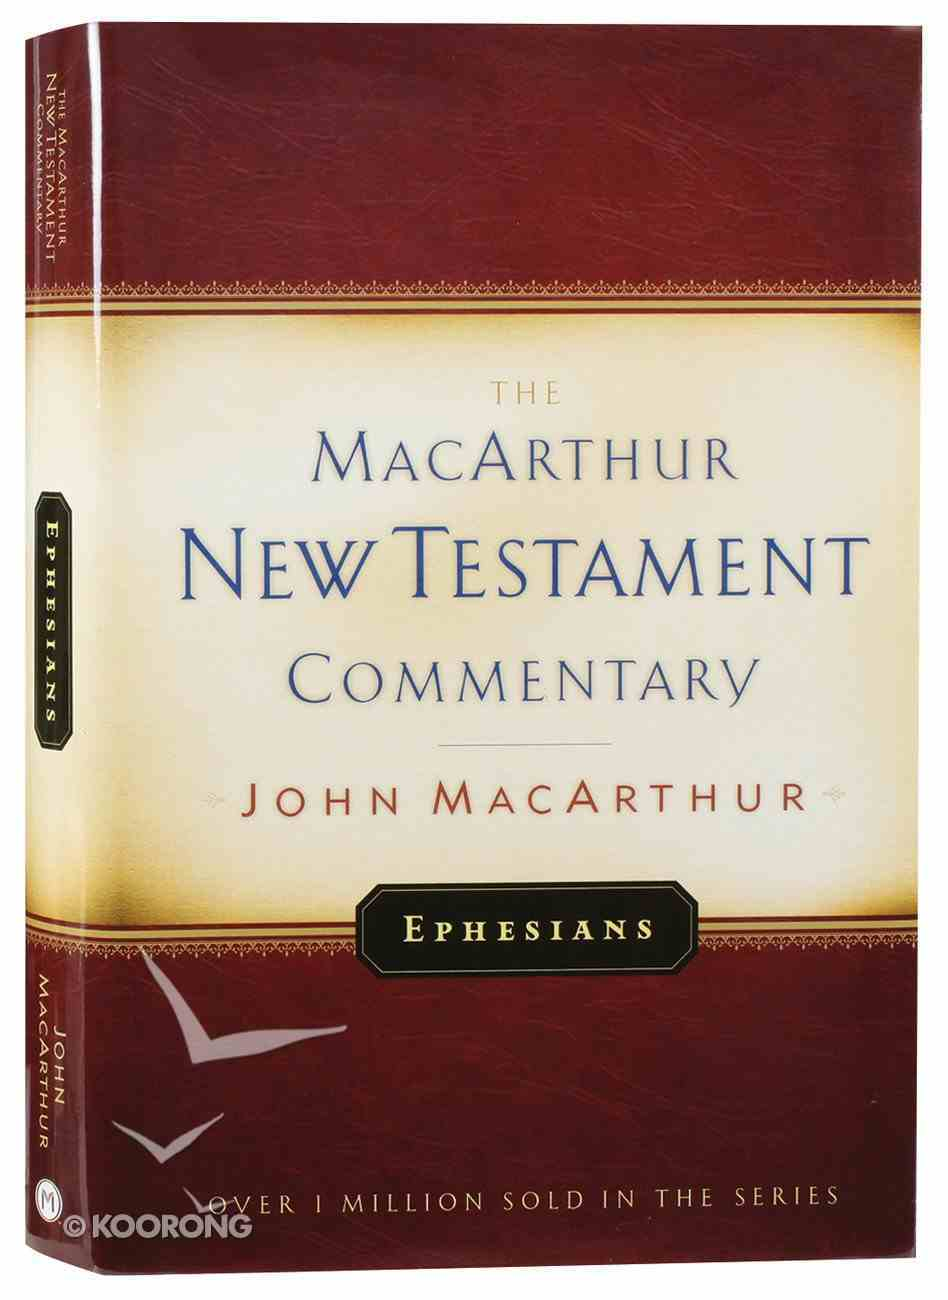 Ephesians (Macarthur New Testament Commentary Series) Hardback